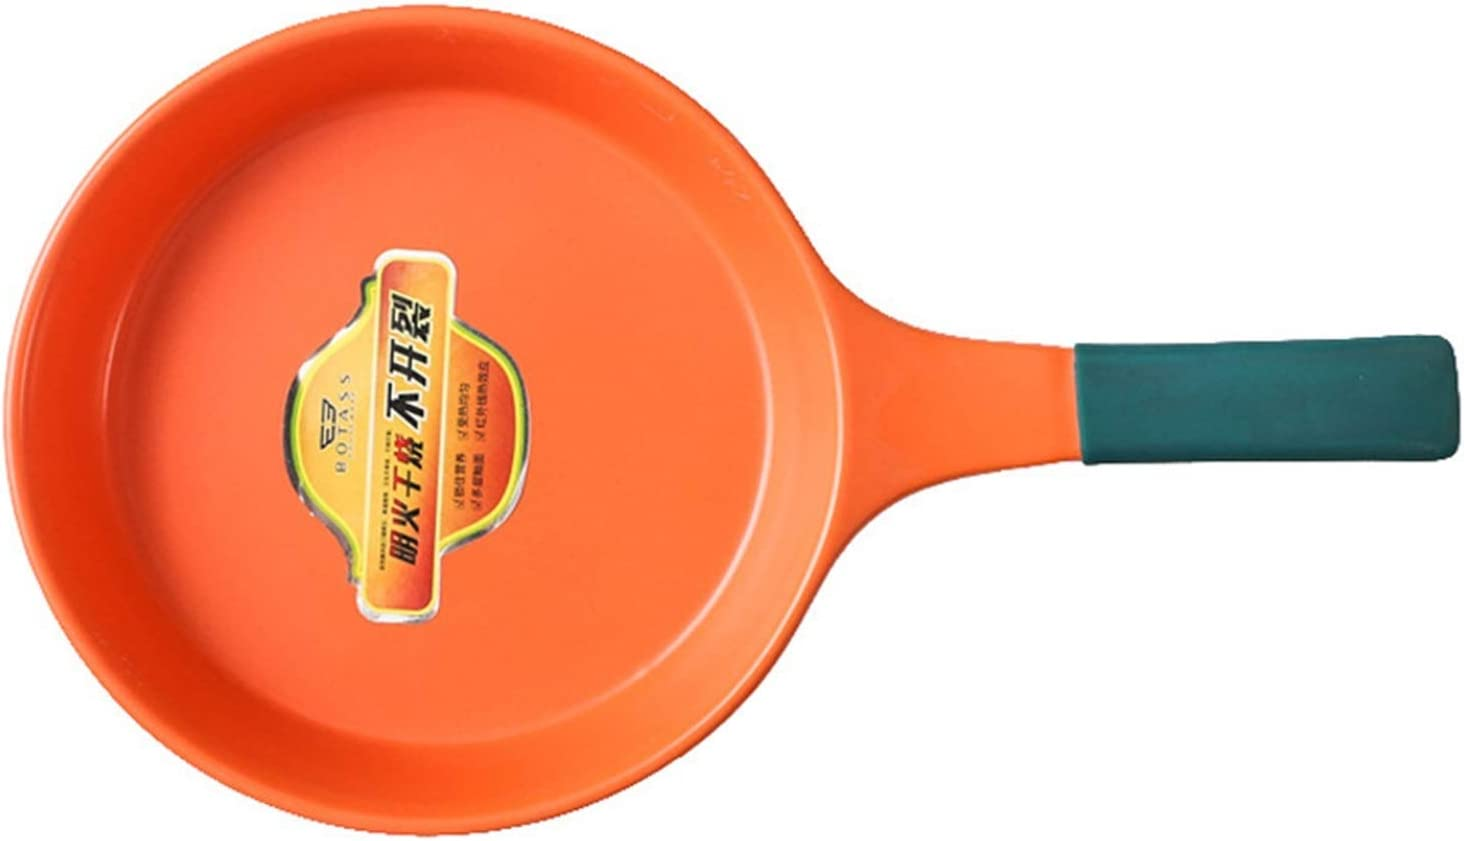 Ceramic cookware frying pan non stick Ranking integrated 1st place f pot saucepan cooking Selling rankings set